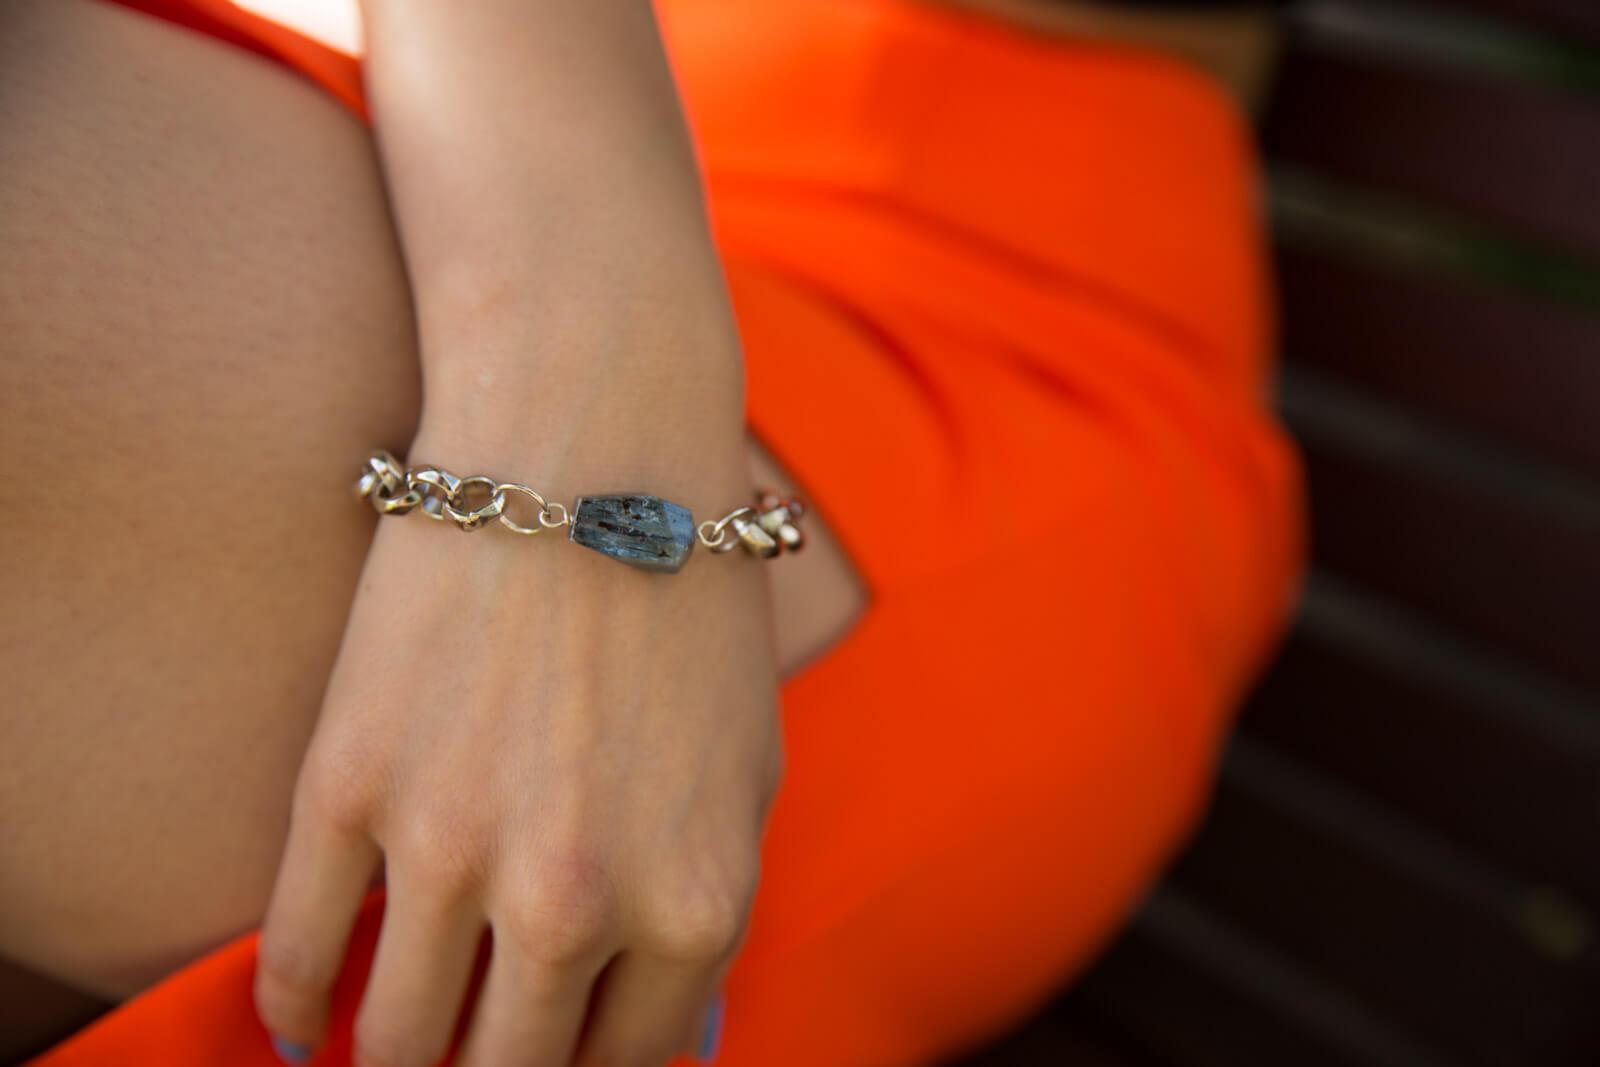 A close shot of a woman's hand against her thigh, wearing a silver chain bracelet with a blue-grey raw stone.